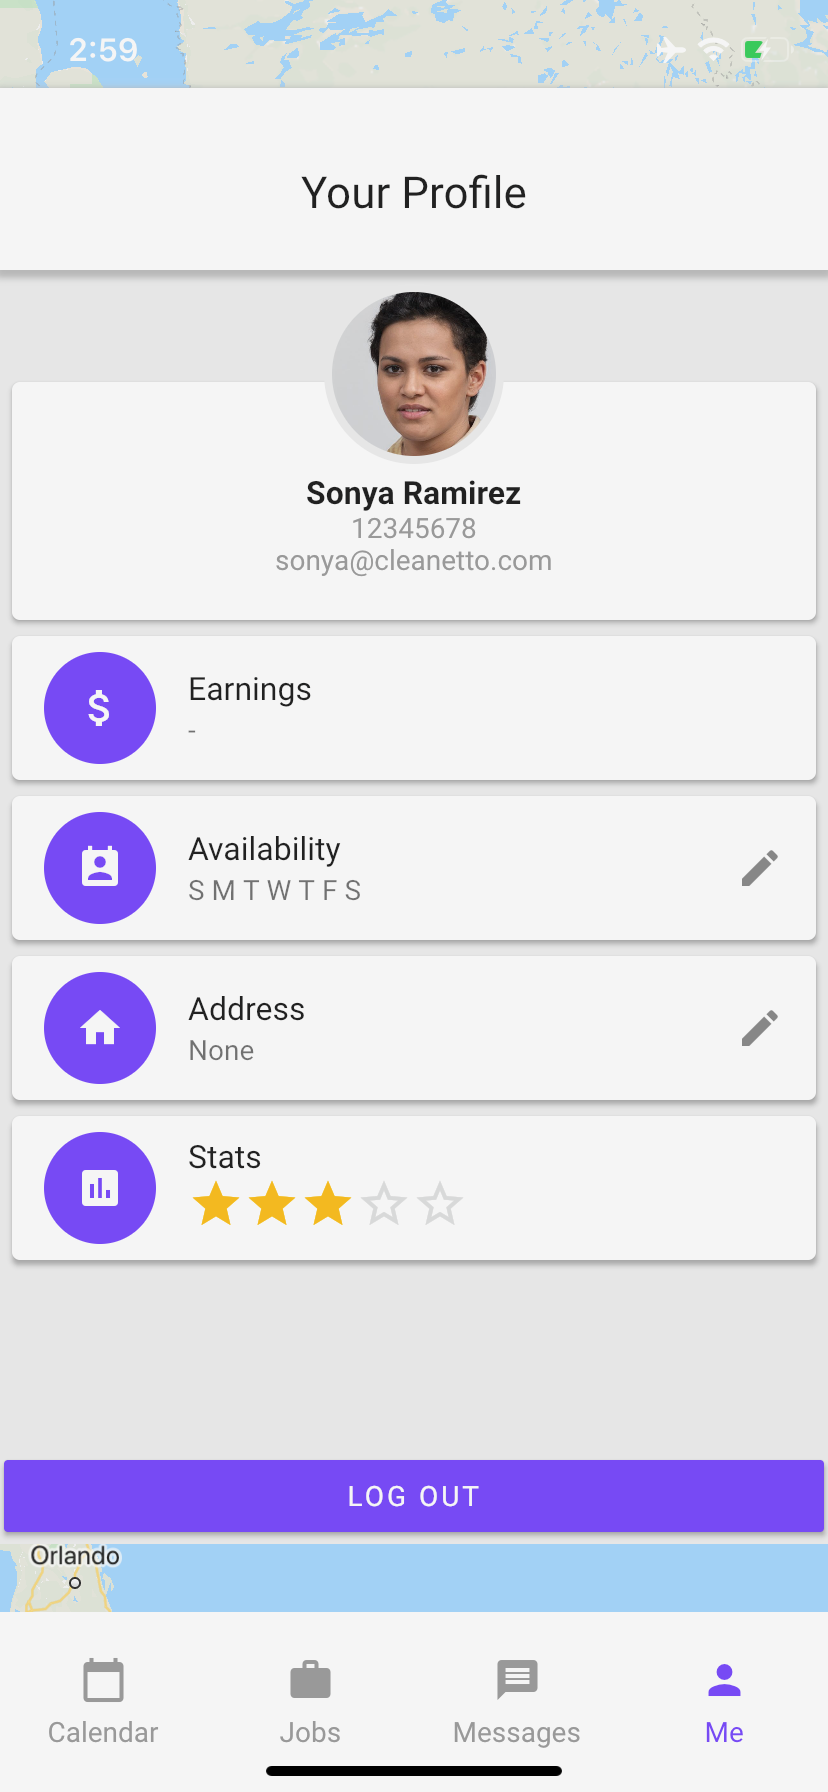 Cleanetto Cleaner App Profile